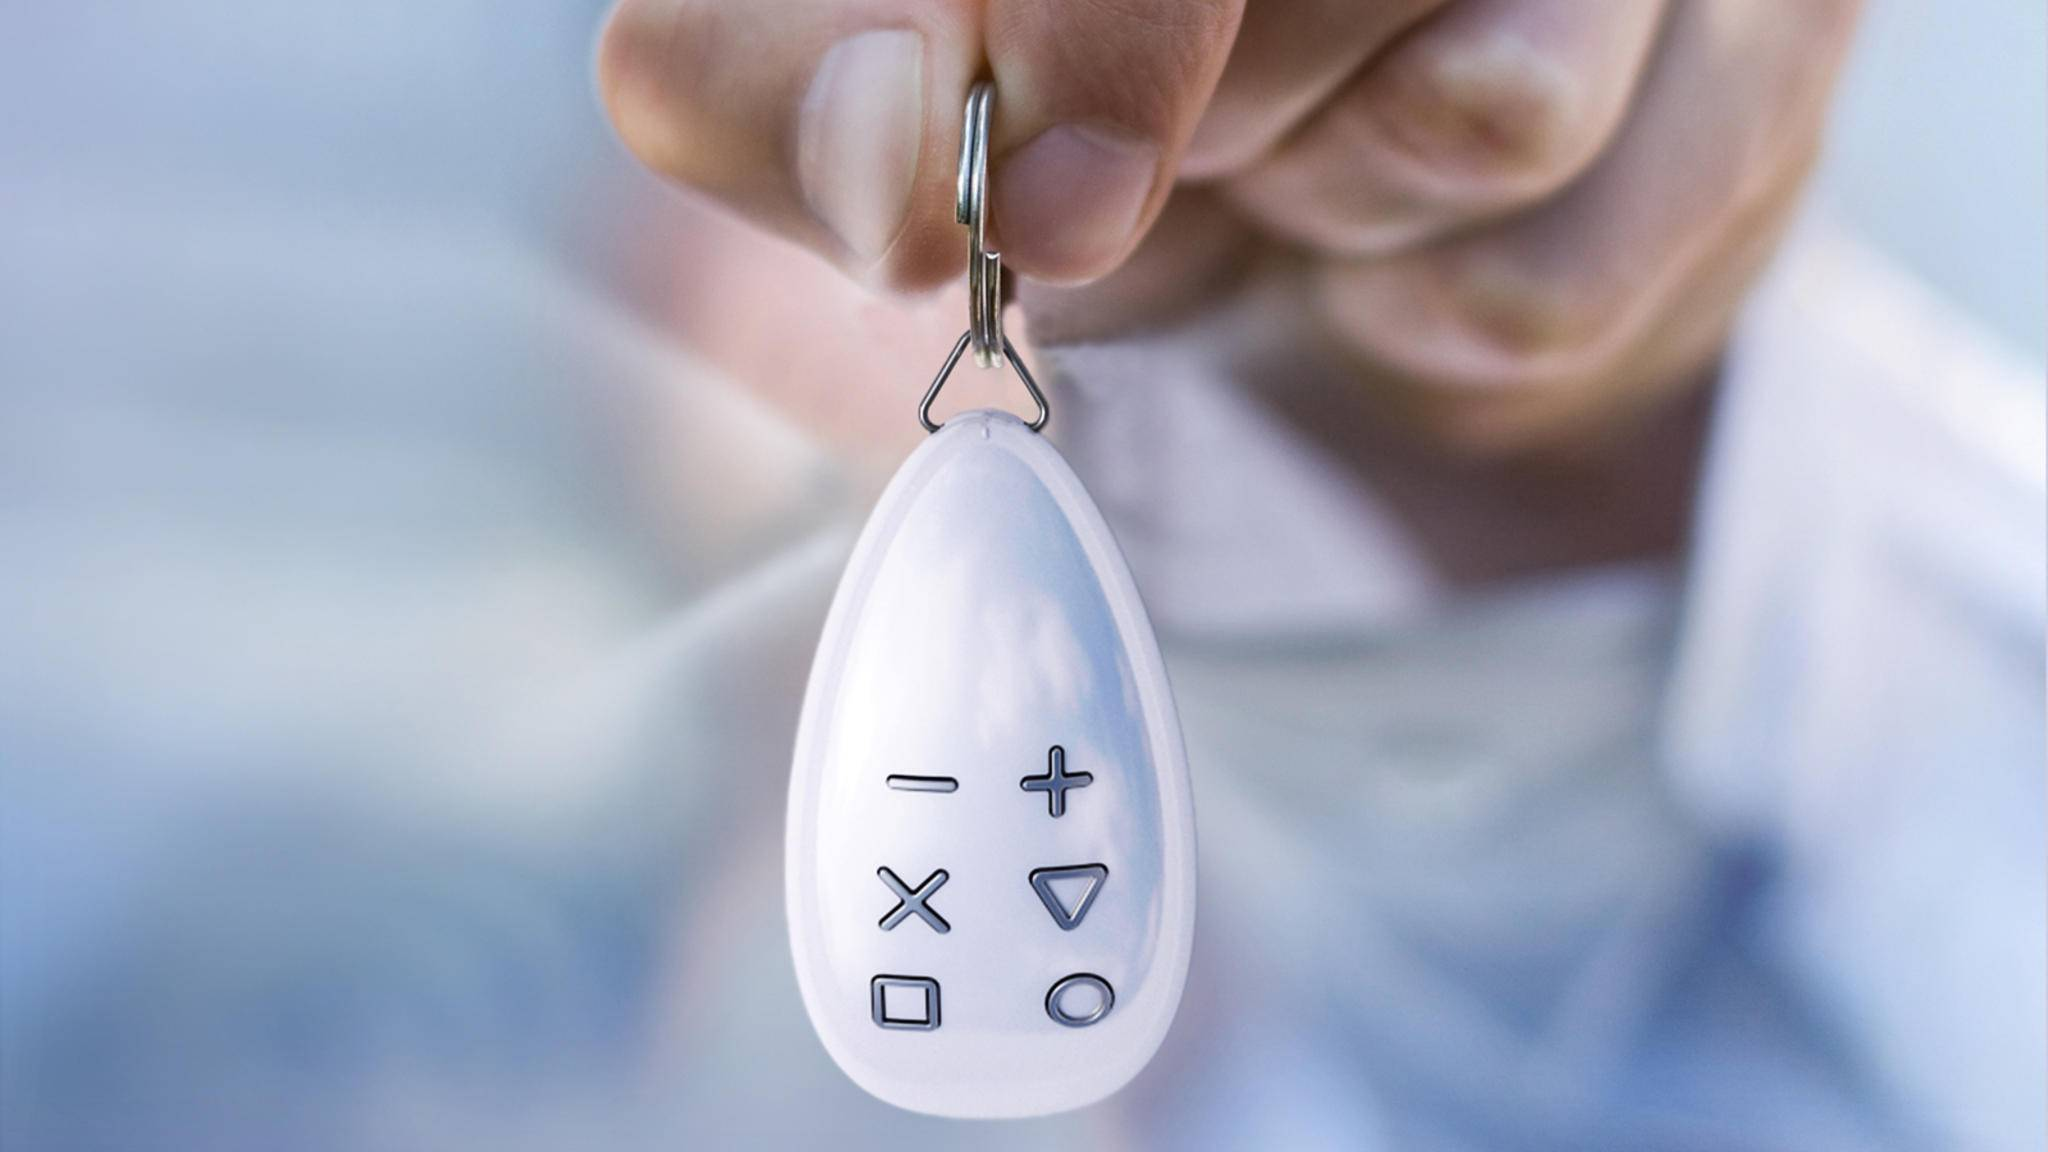 Fibaro KeyFob für Smart Home